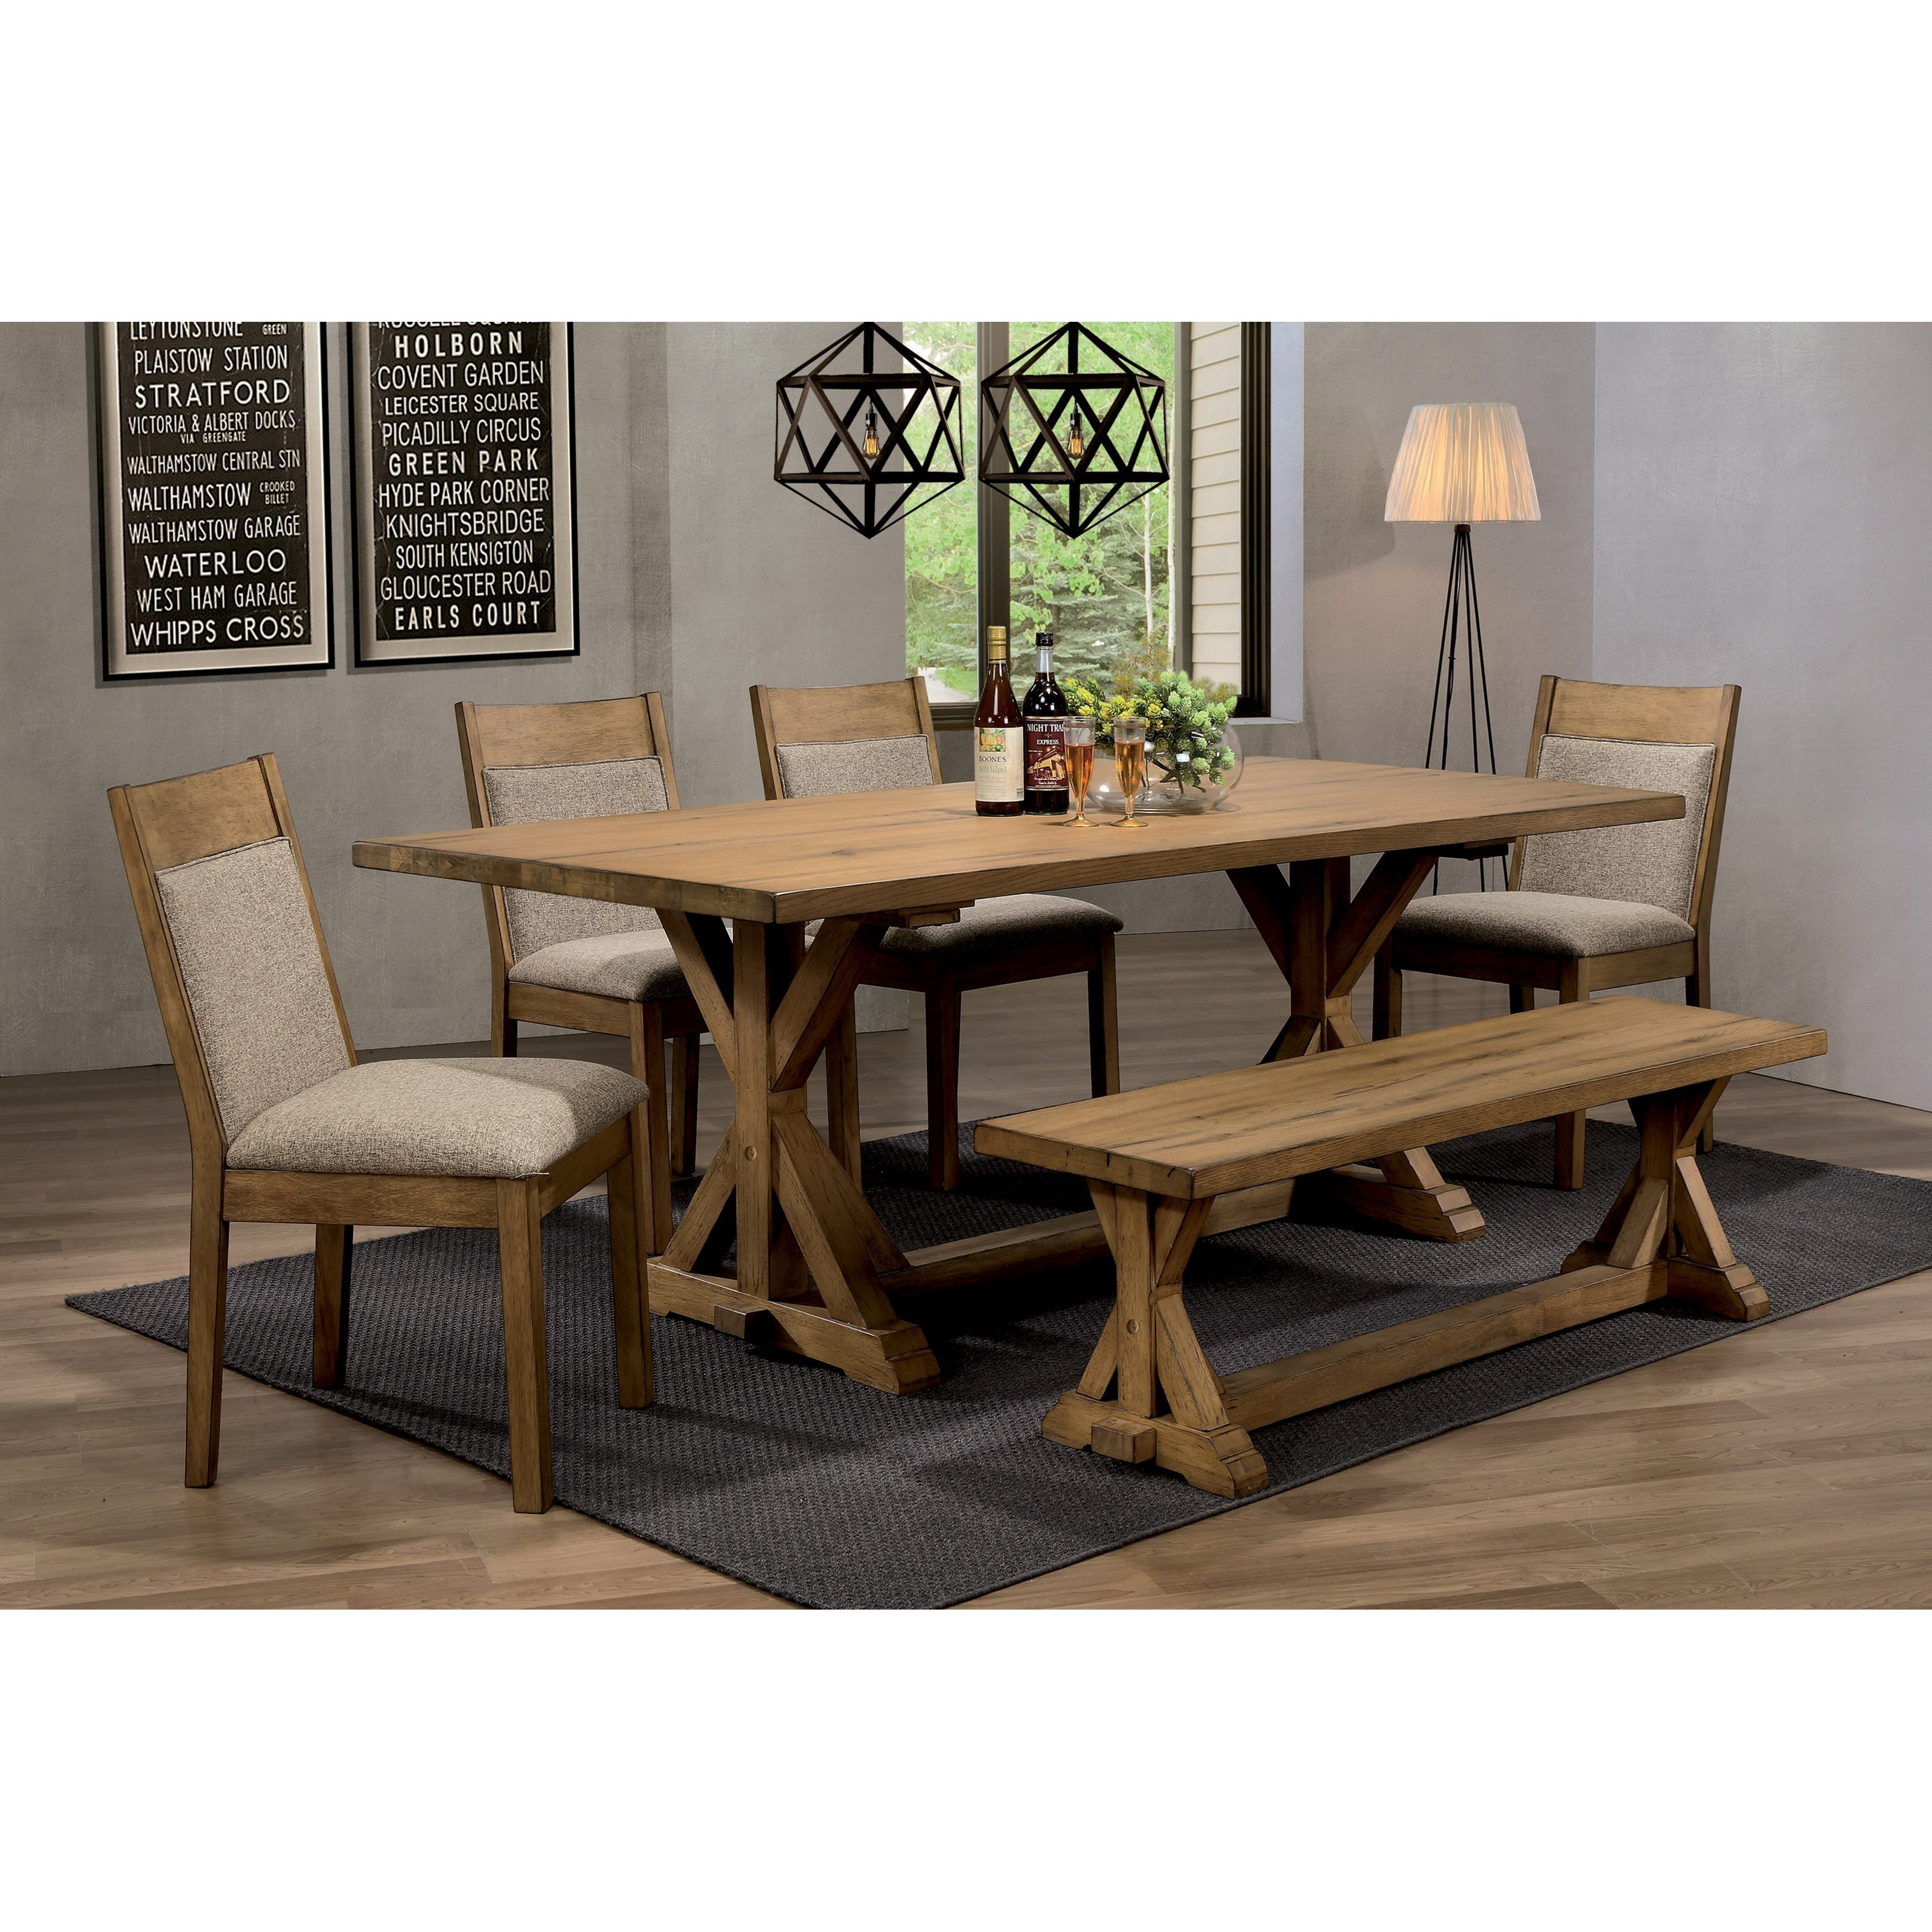 Coaster Douglas Rustic Dining Table Set With Bench